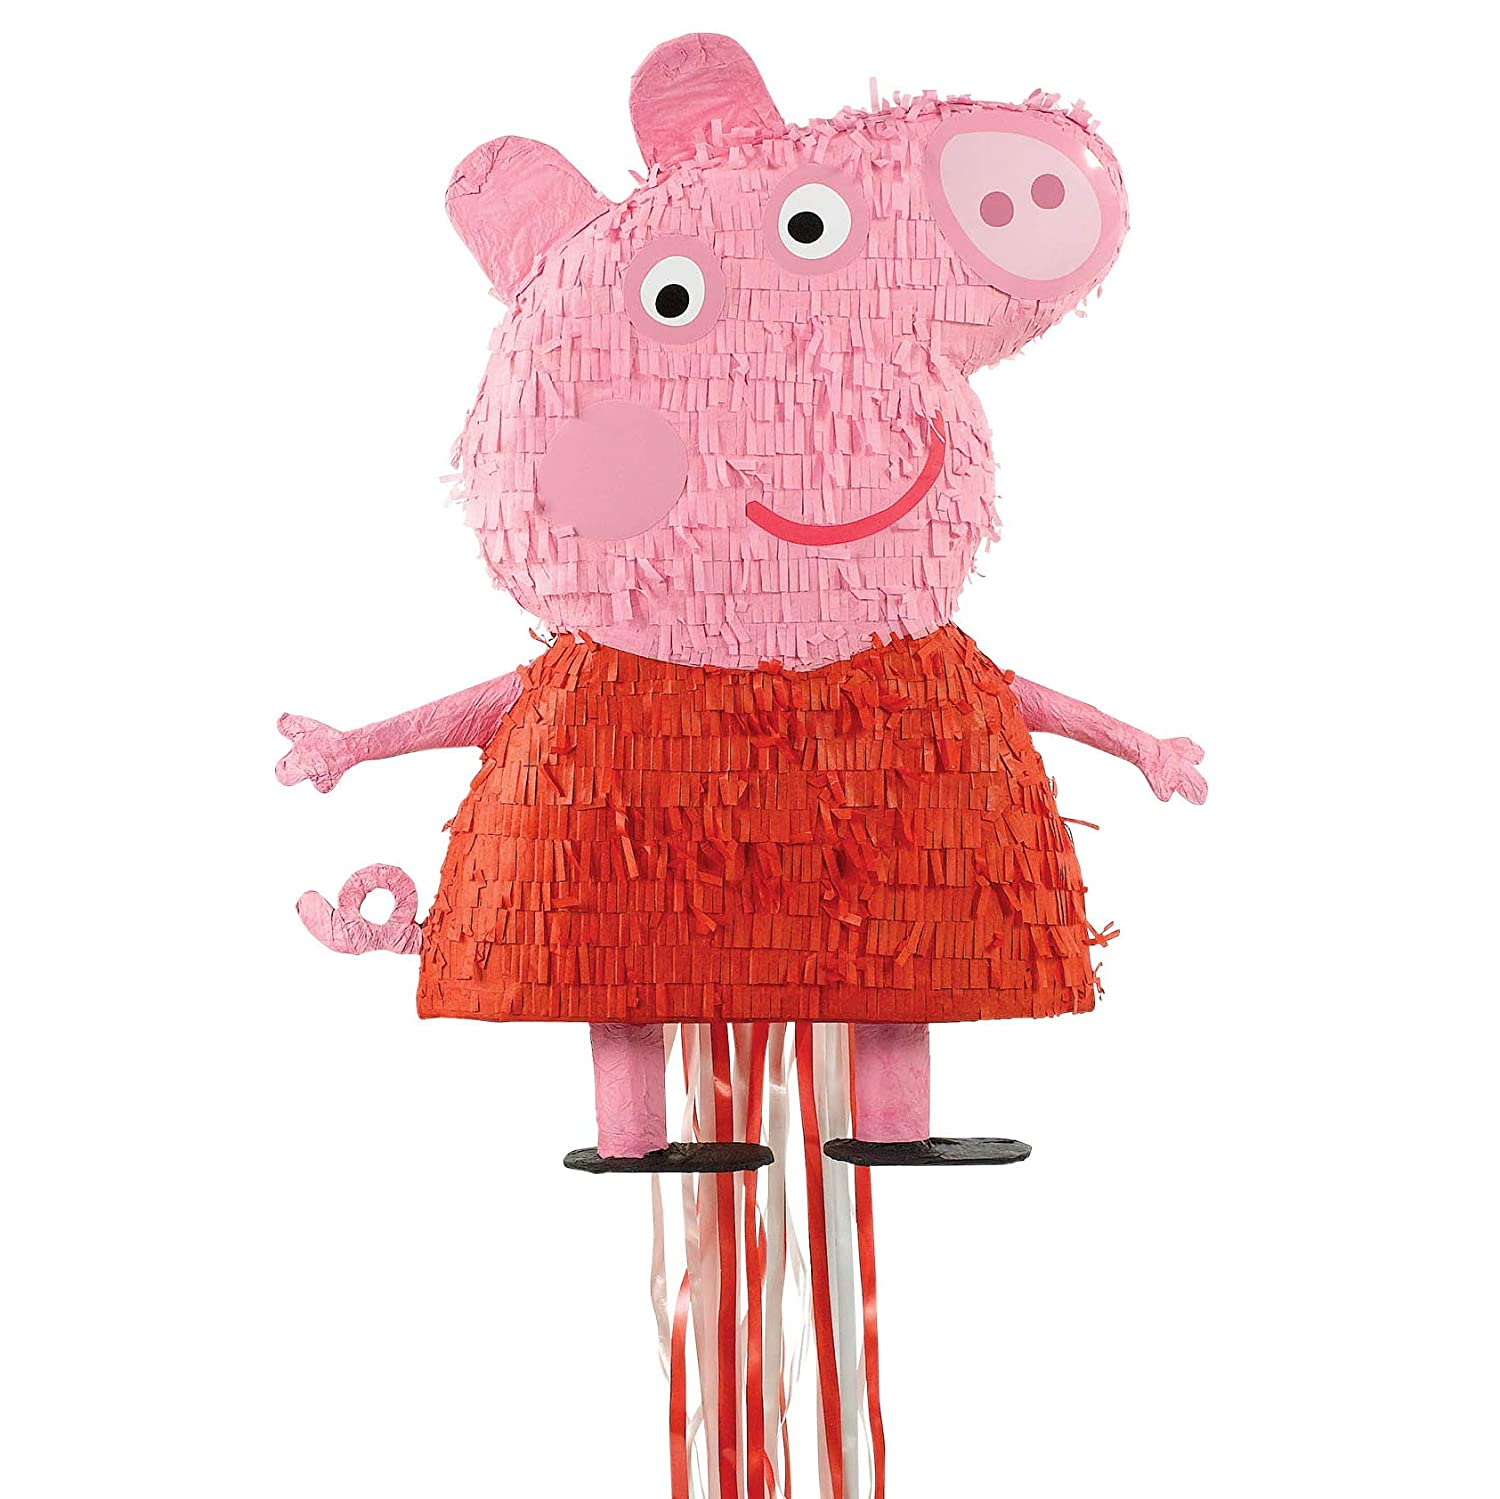 Fill With Sweets! Peppa Pig Pull String Pinjata Pinata Party Game Toy